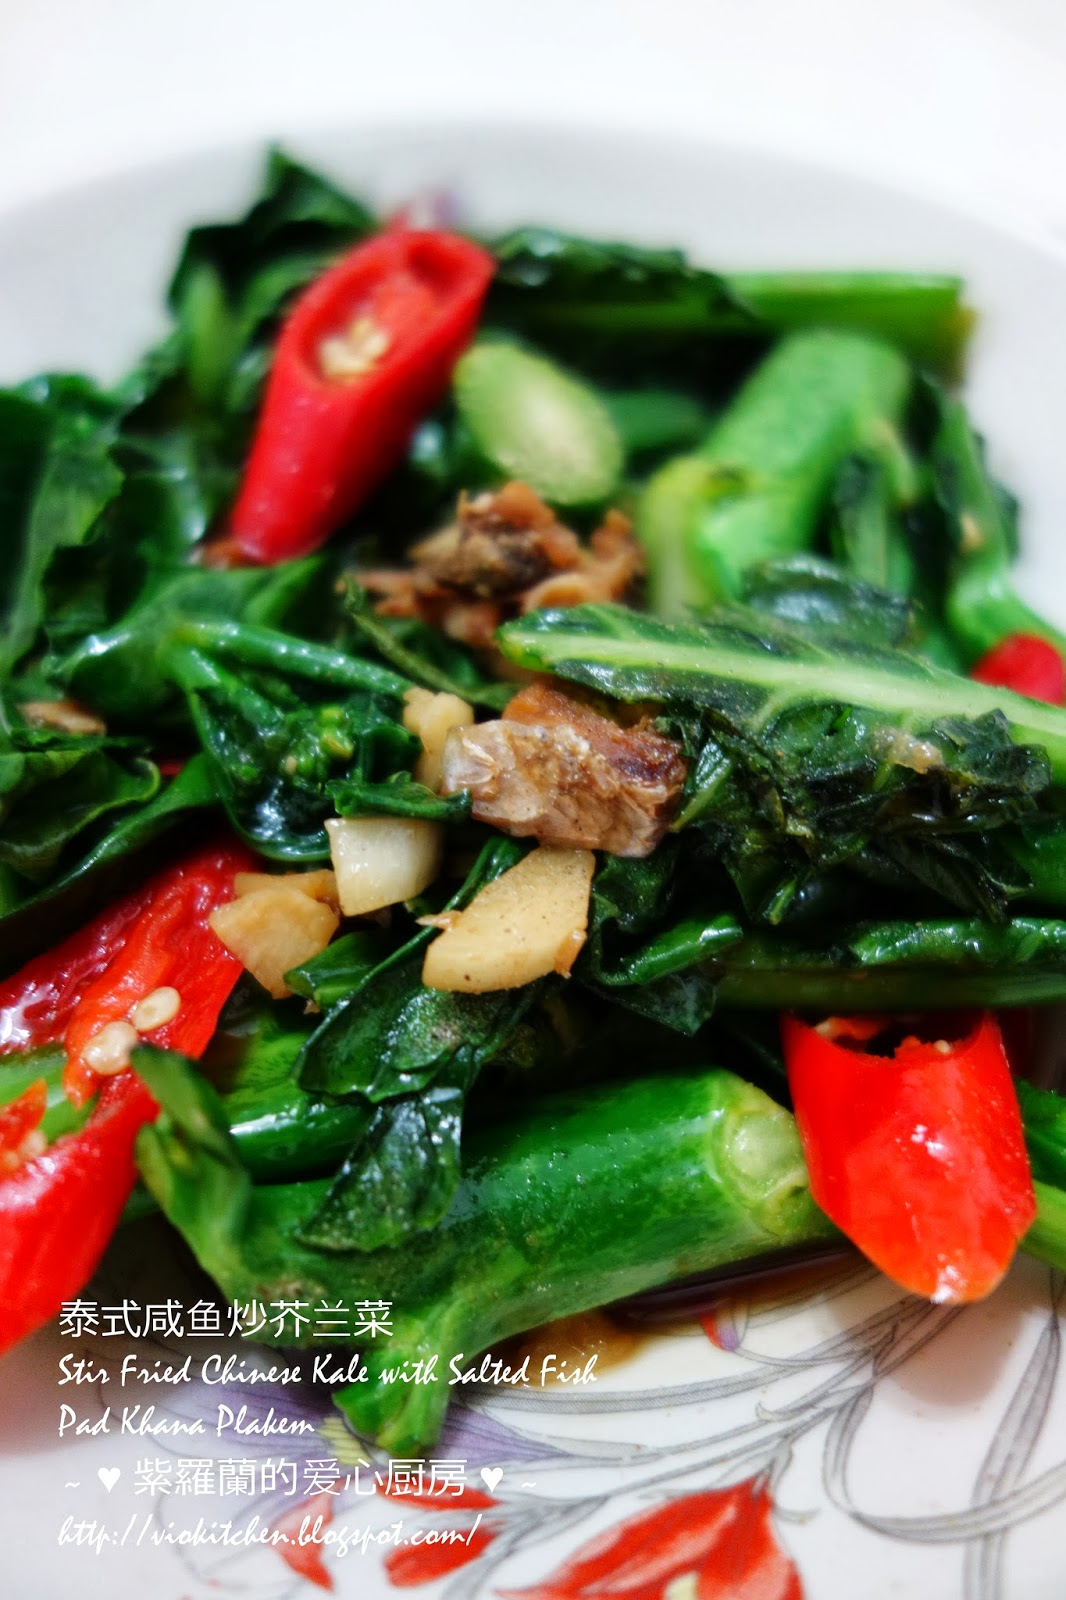 Violet 39 s kitchen stir fried for Chinese salted fish